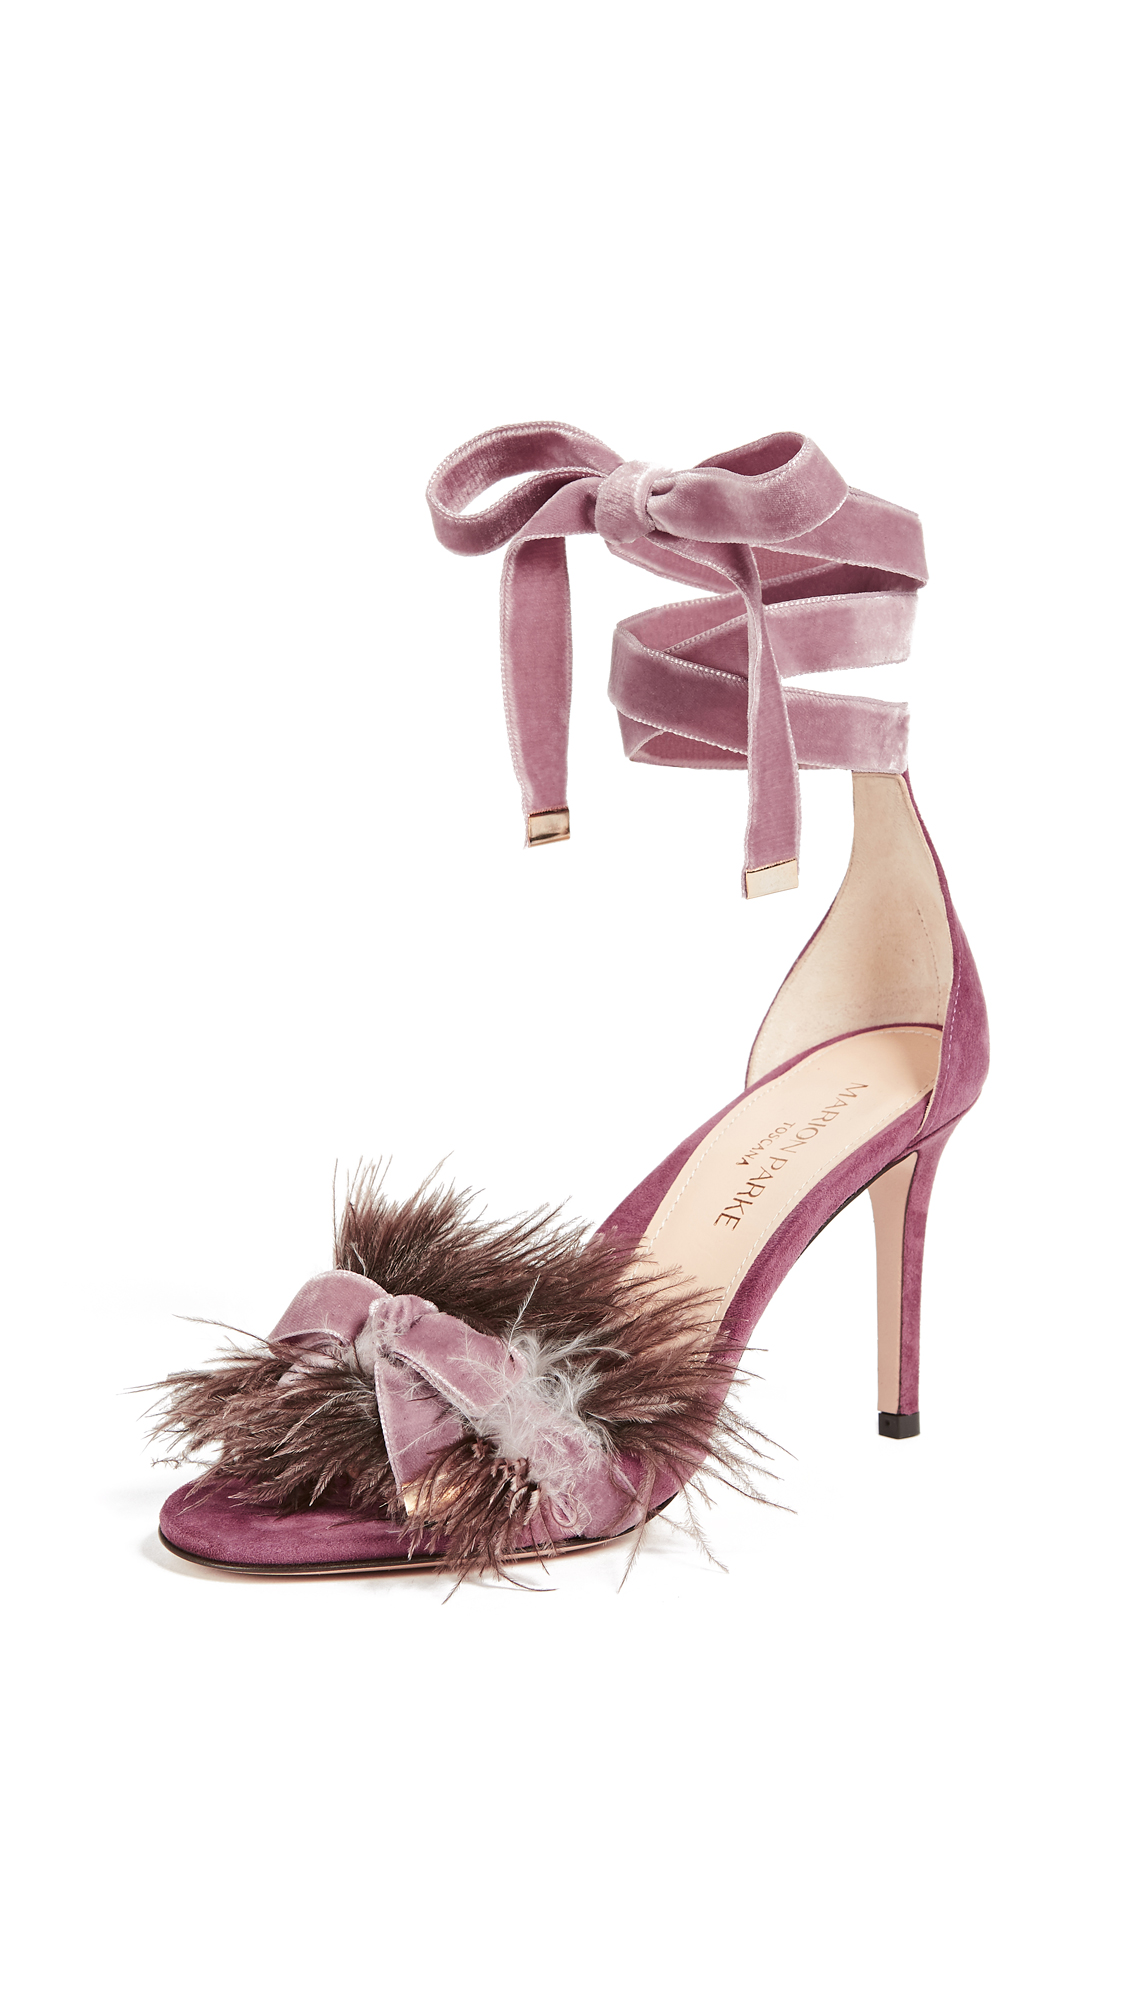 Marion Parke Lainey Feather Sandals - China Rose